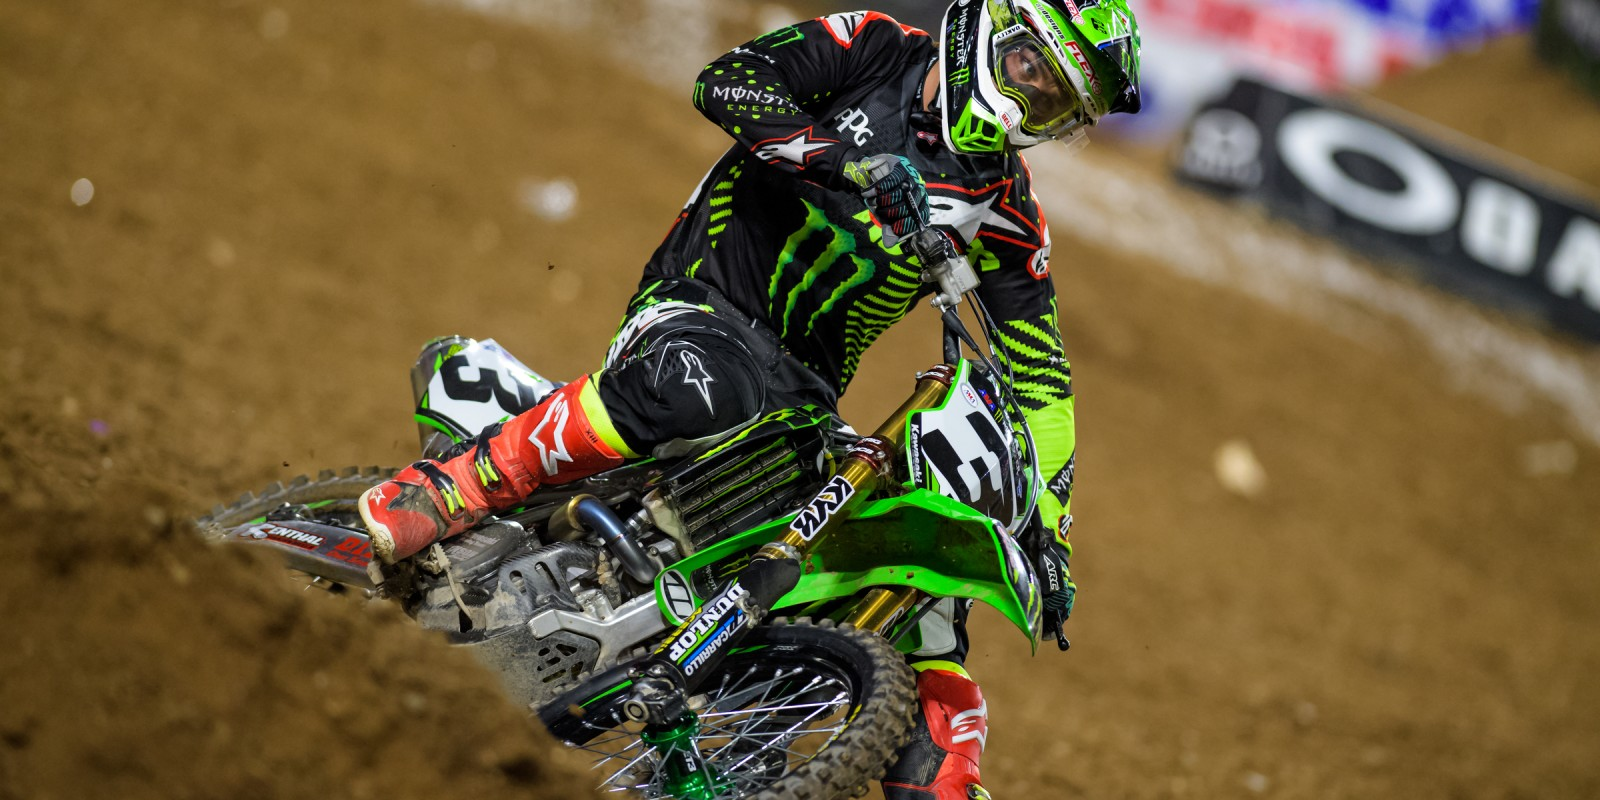 Monster athletes compete at the 2017 Supercross in Glendale, California